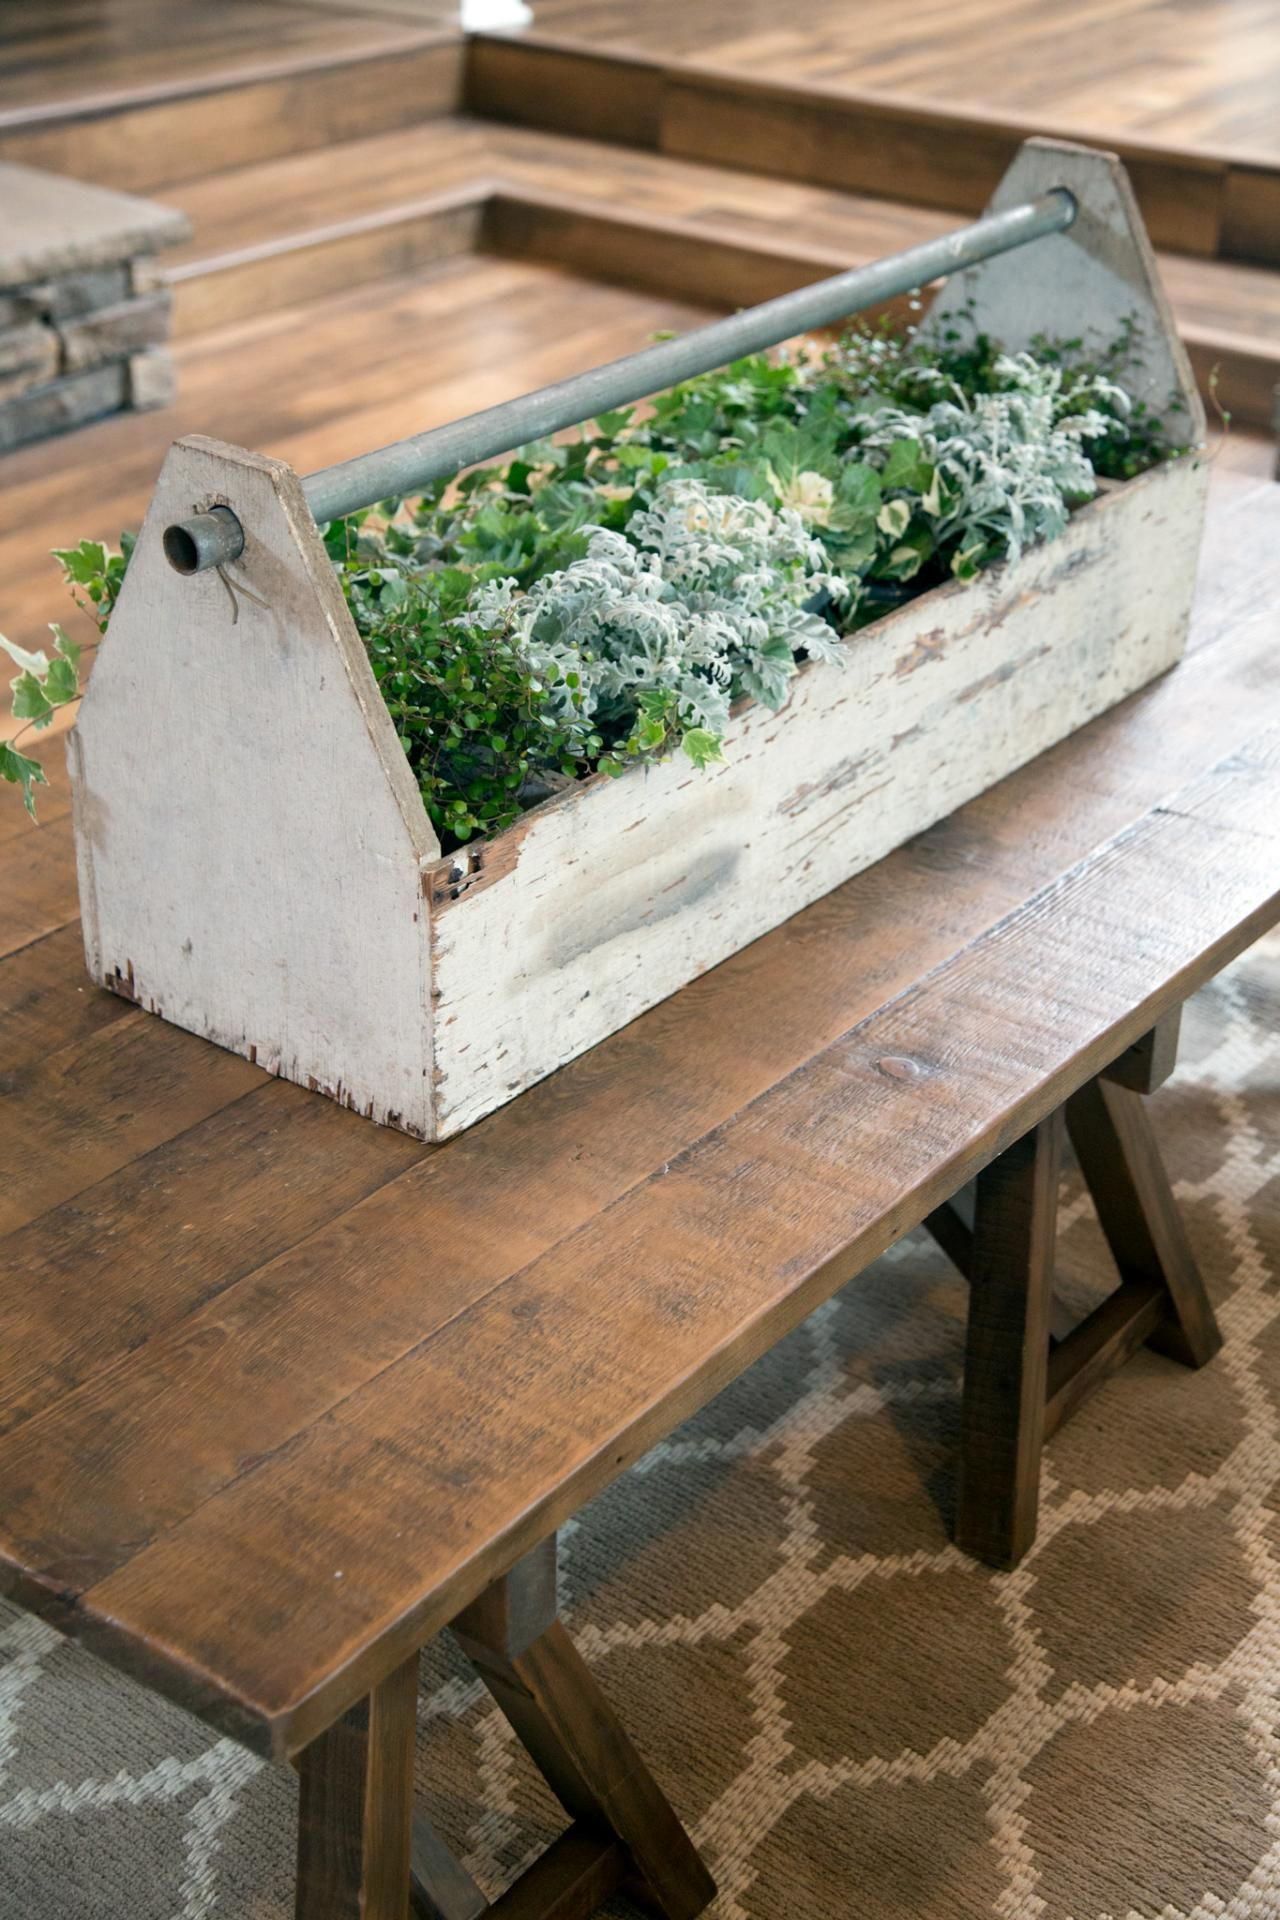 Coffee Table Centerpieces As Seen On HGTVs Fixer Upper